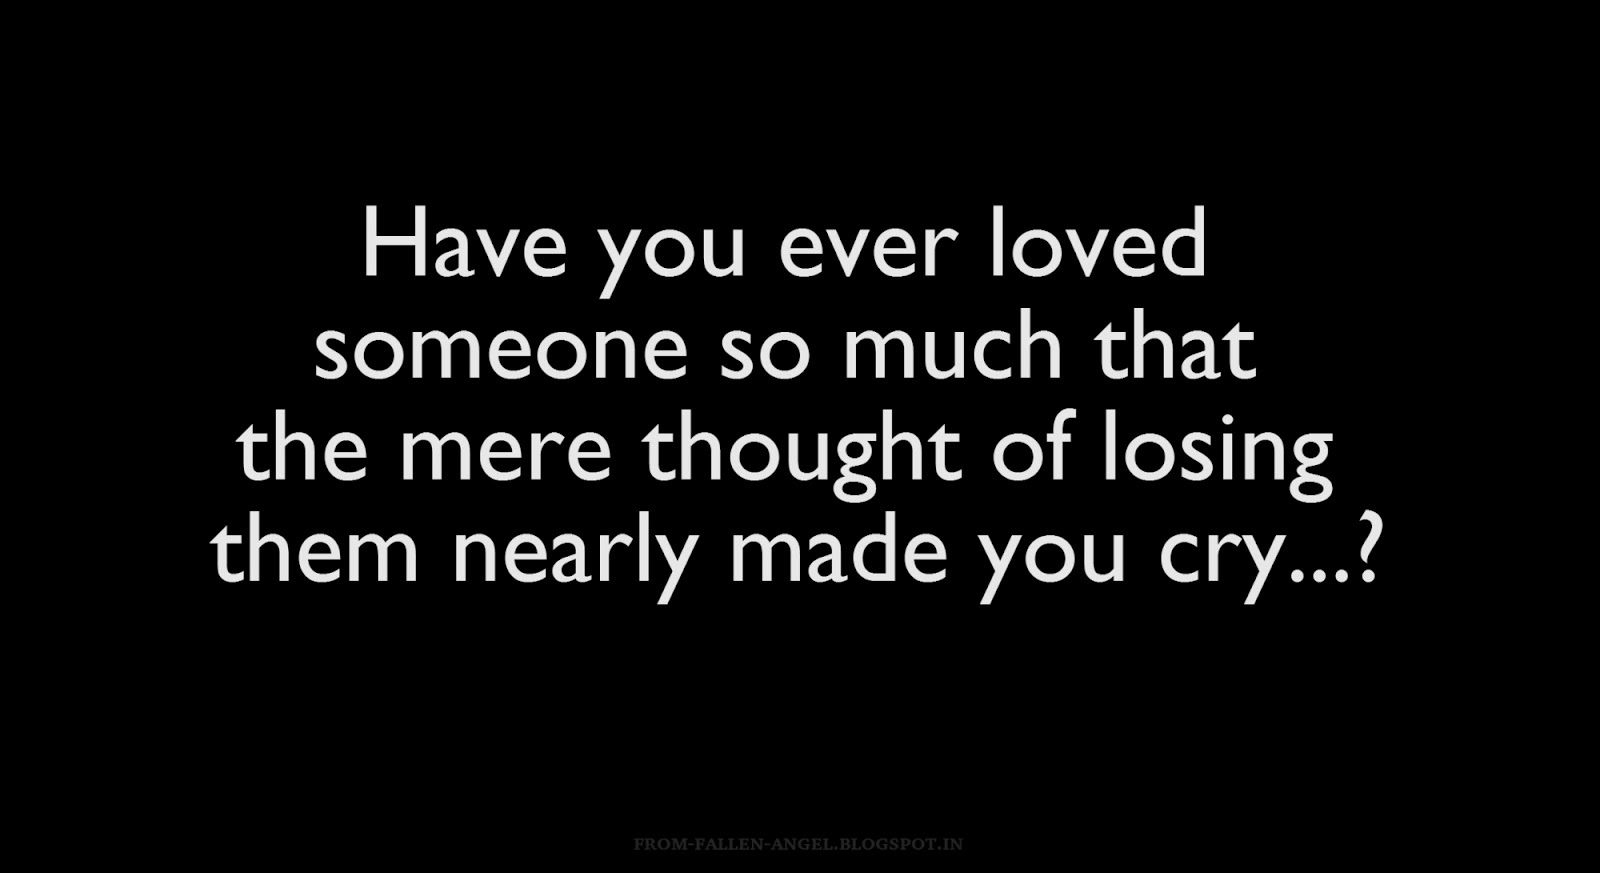 Have you ever loved someone so much that the mere thought of losing them nearly made you cry